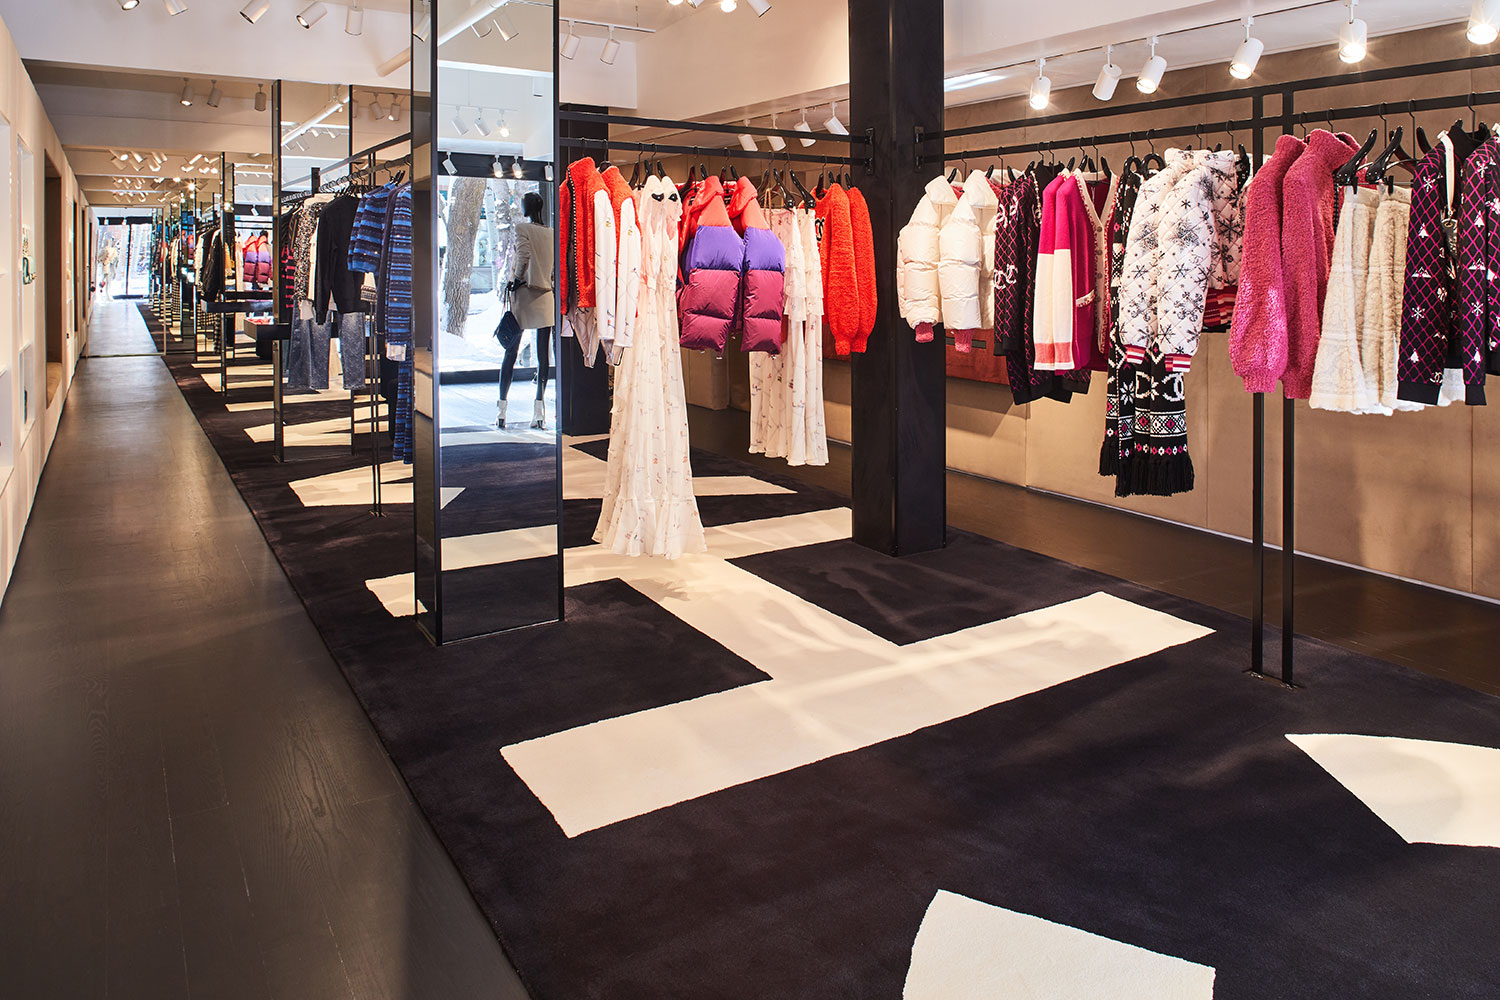 Chanel to open Ephemeral Boutique in Aspen